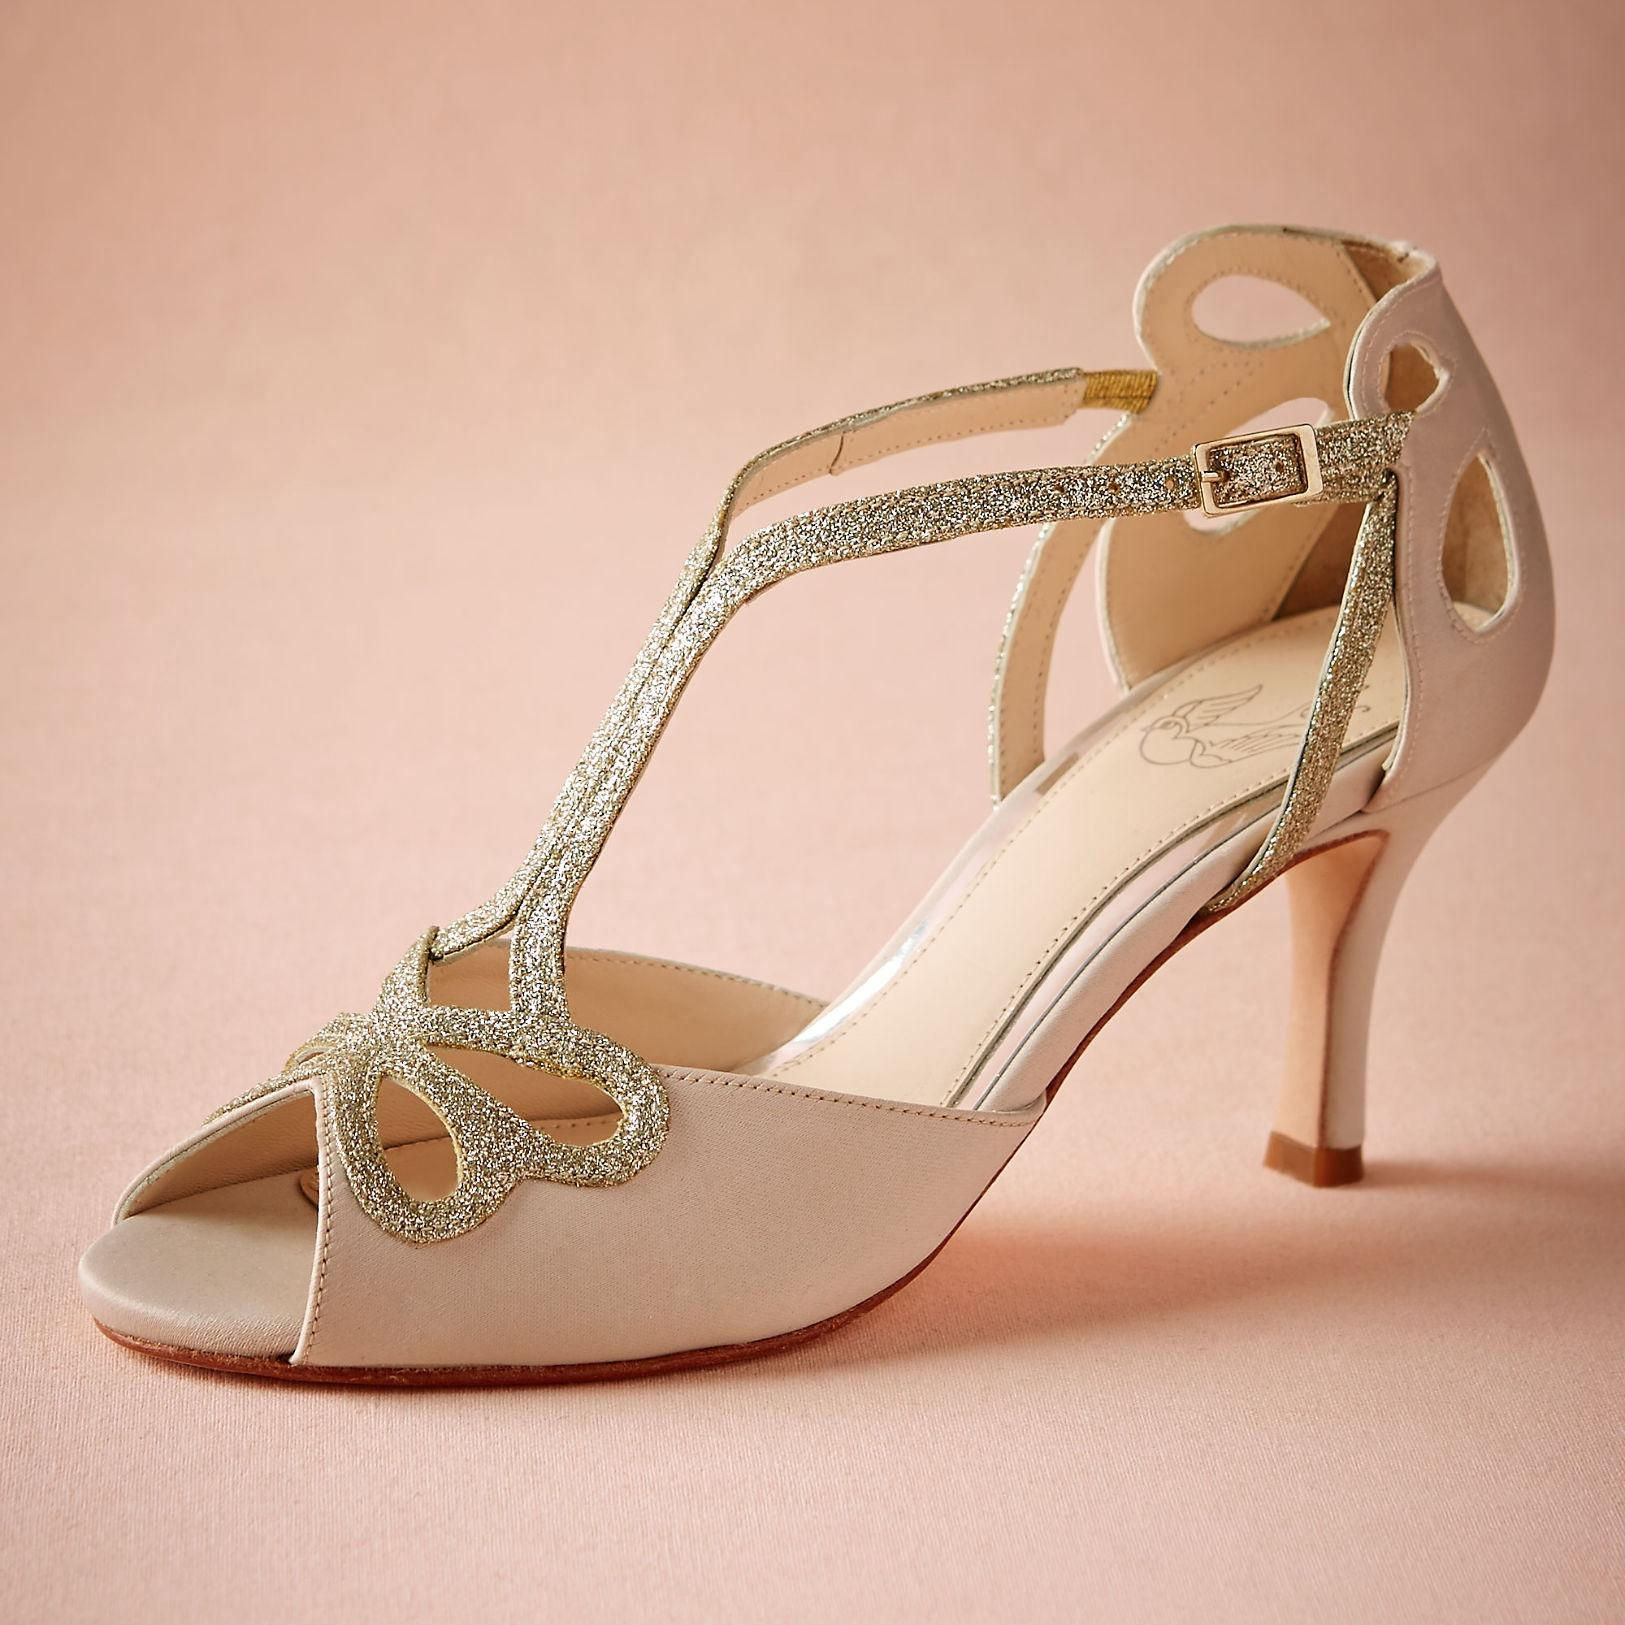 Blush Low Heel Wedding Shoes Hollow Out Peep Toe Bridal Sandals ...